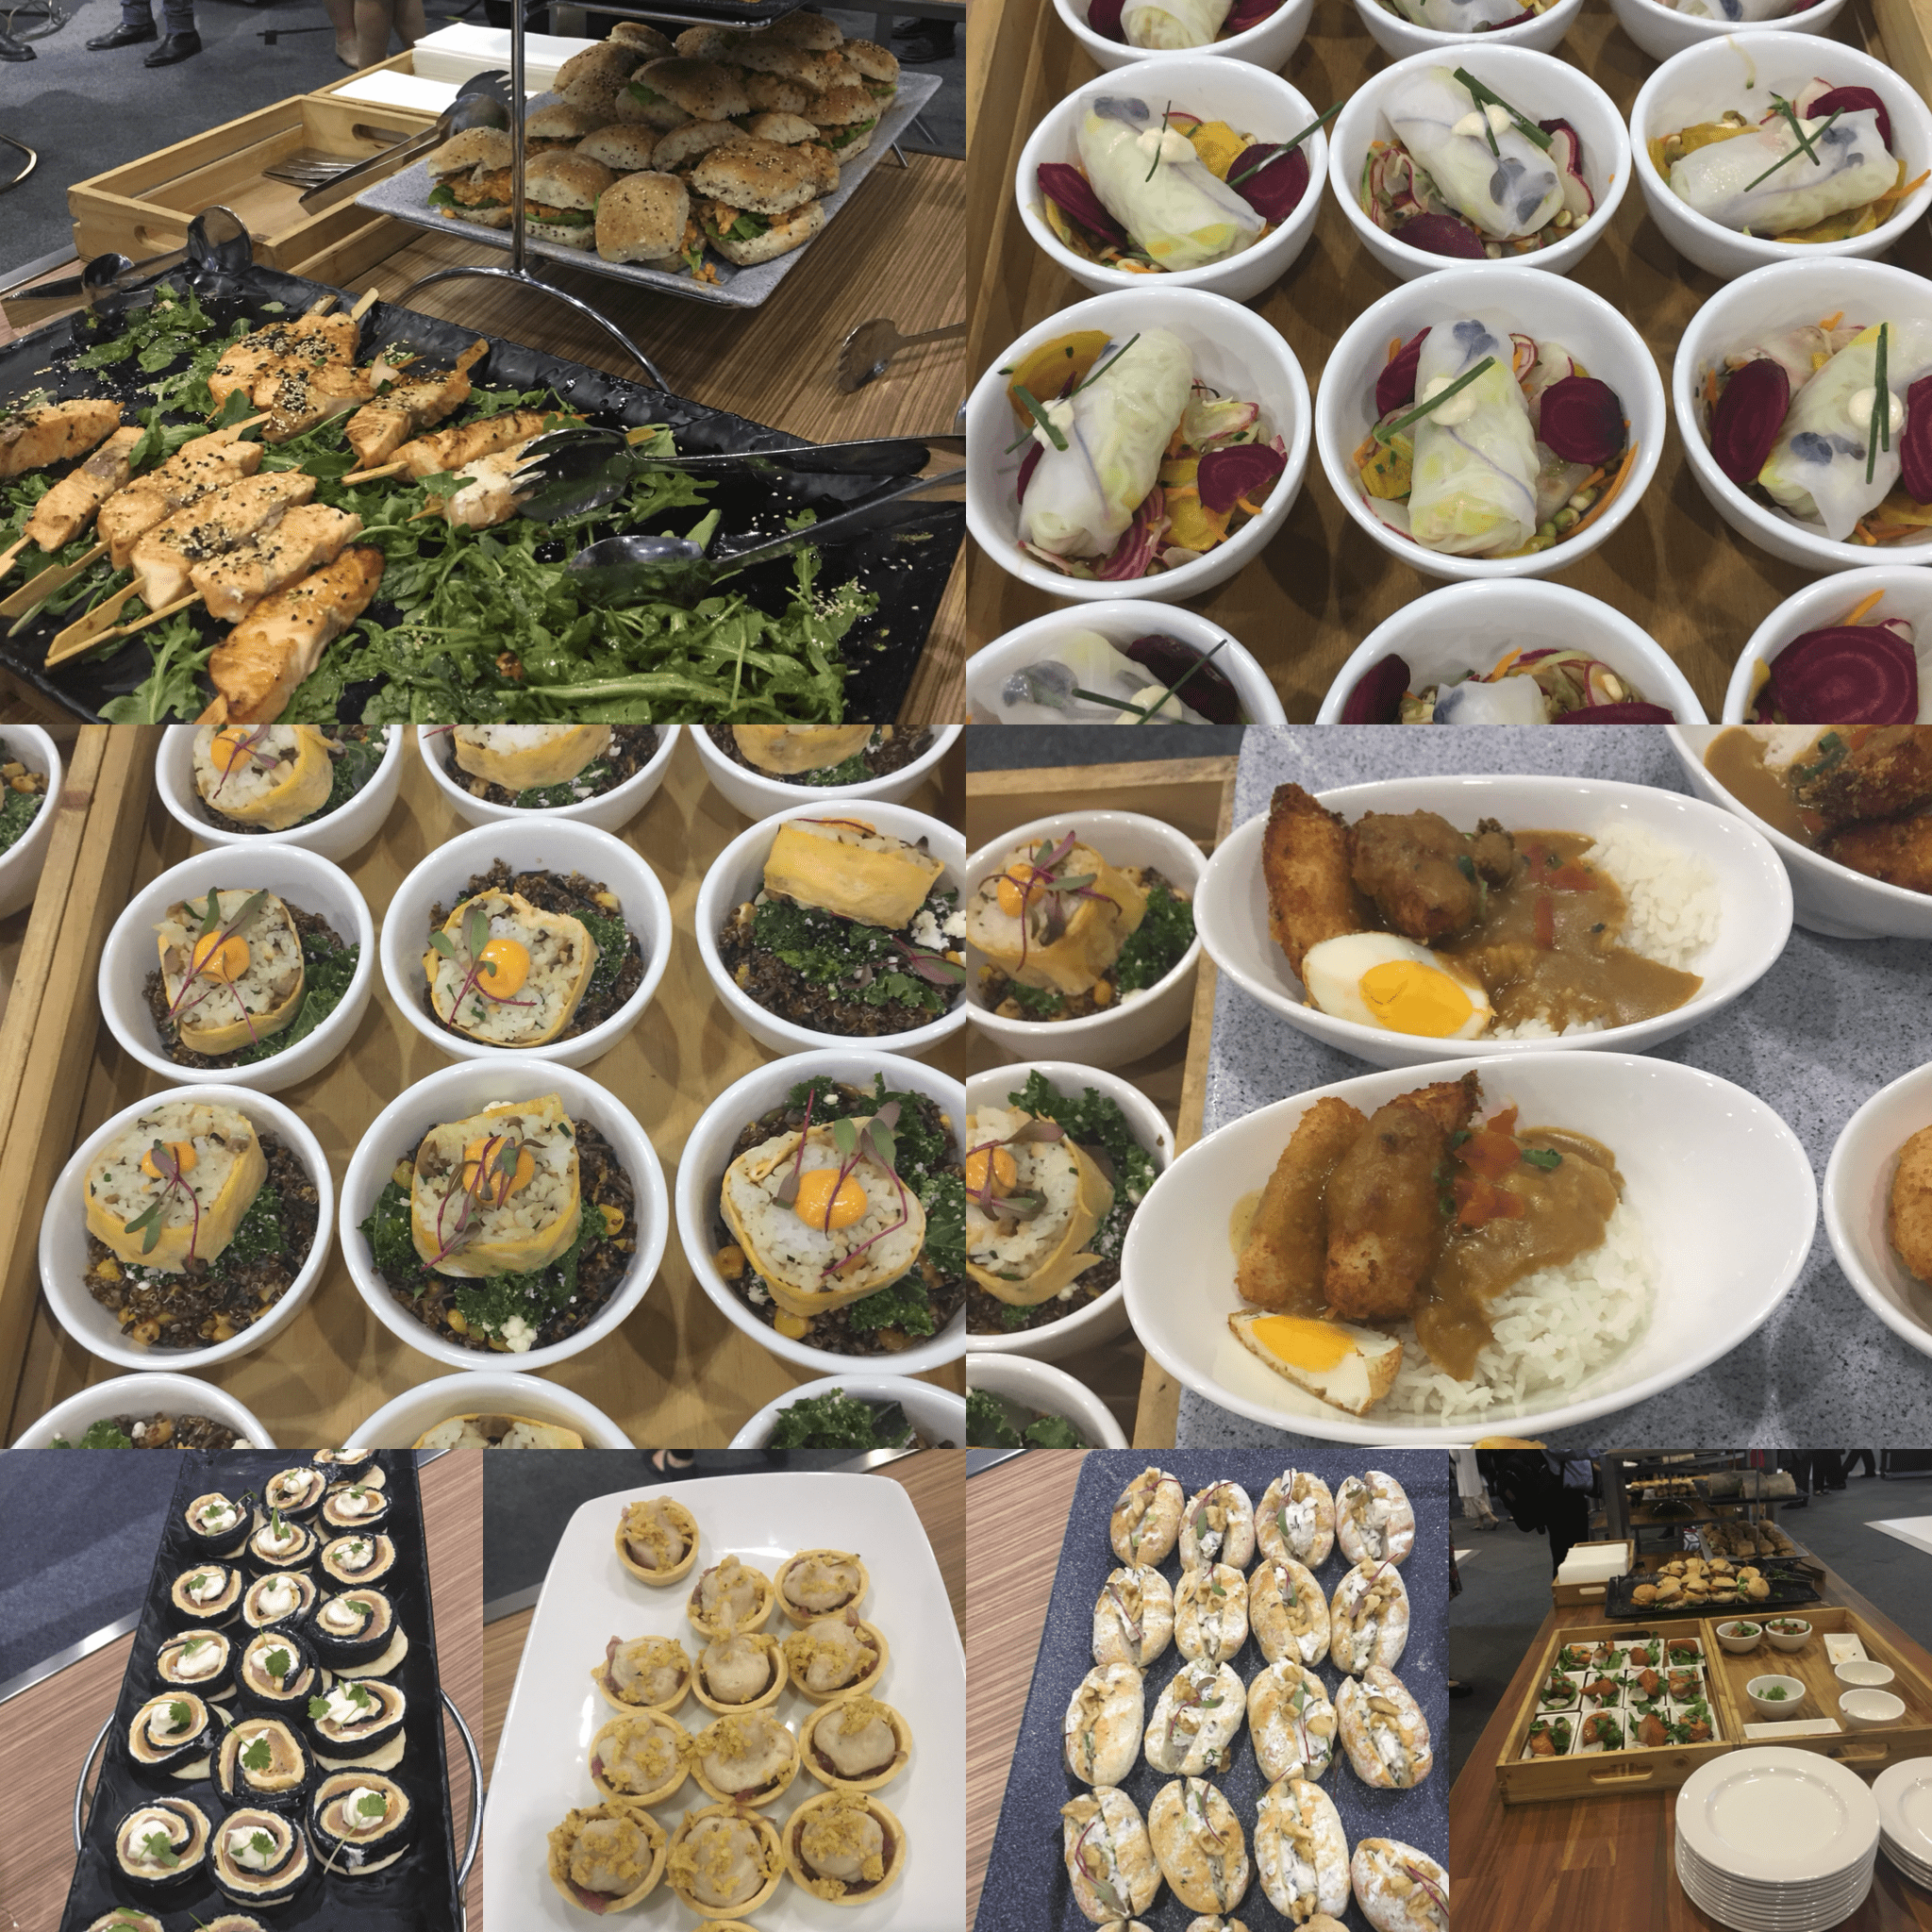 Assortment of conference food